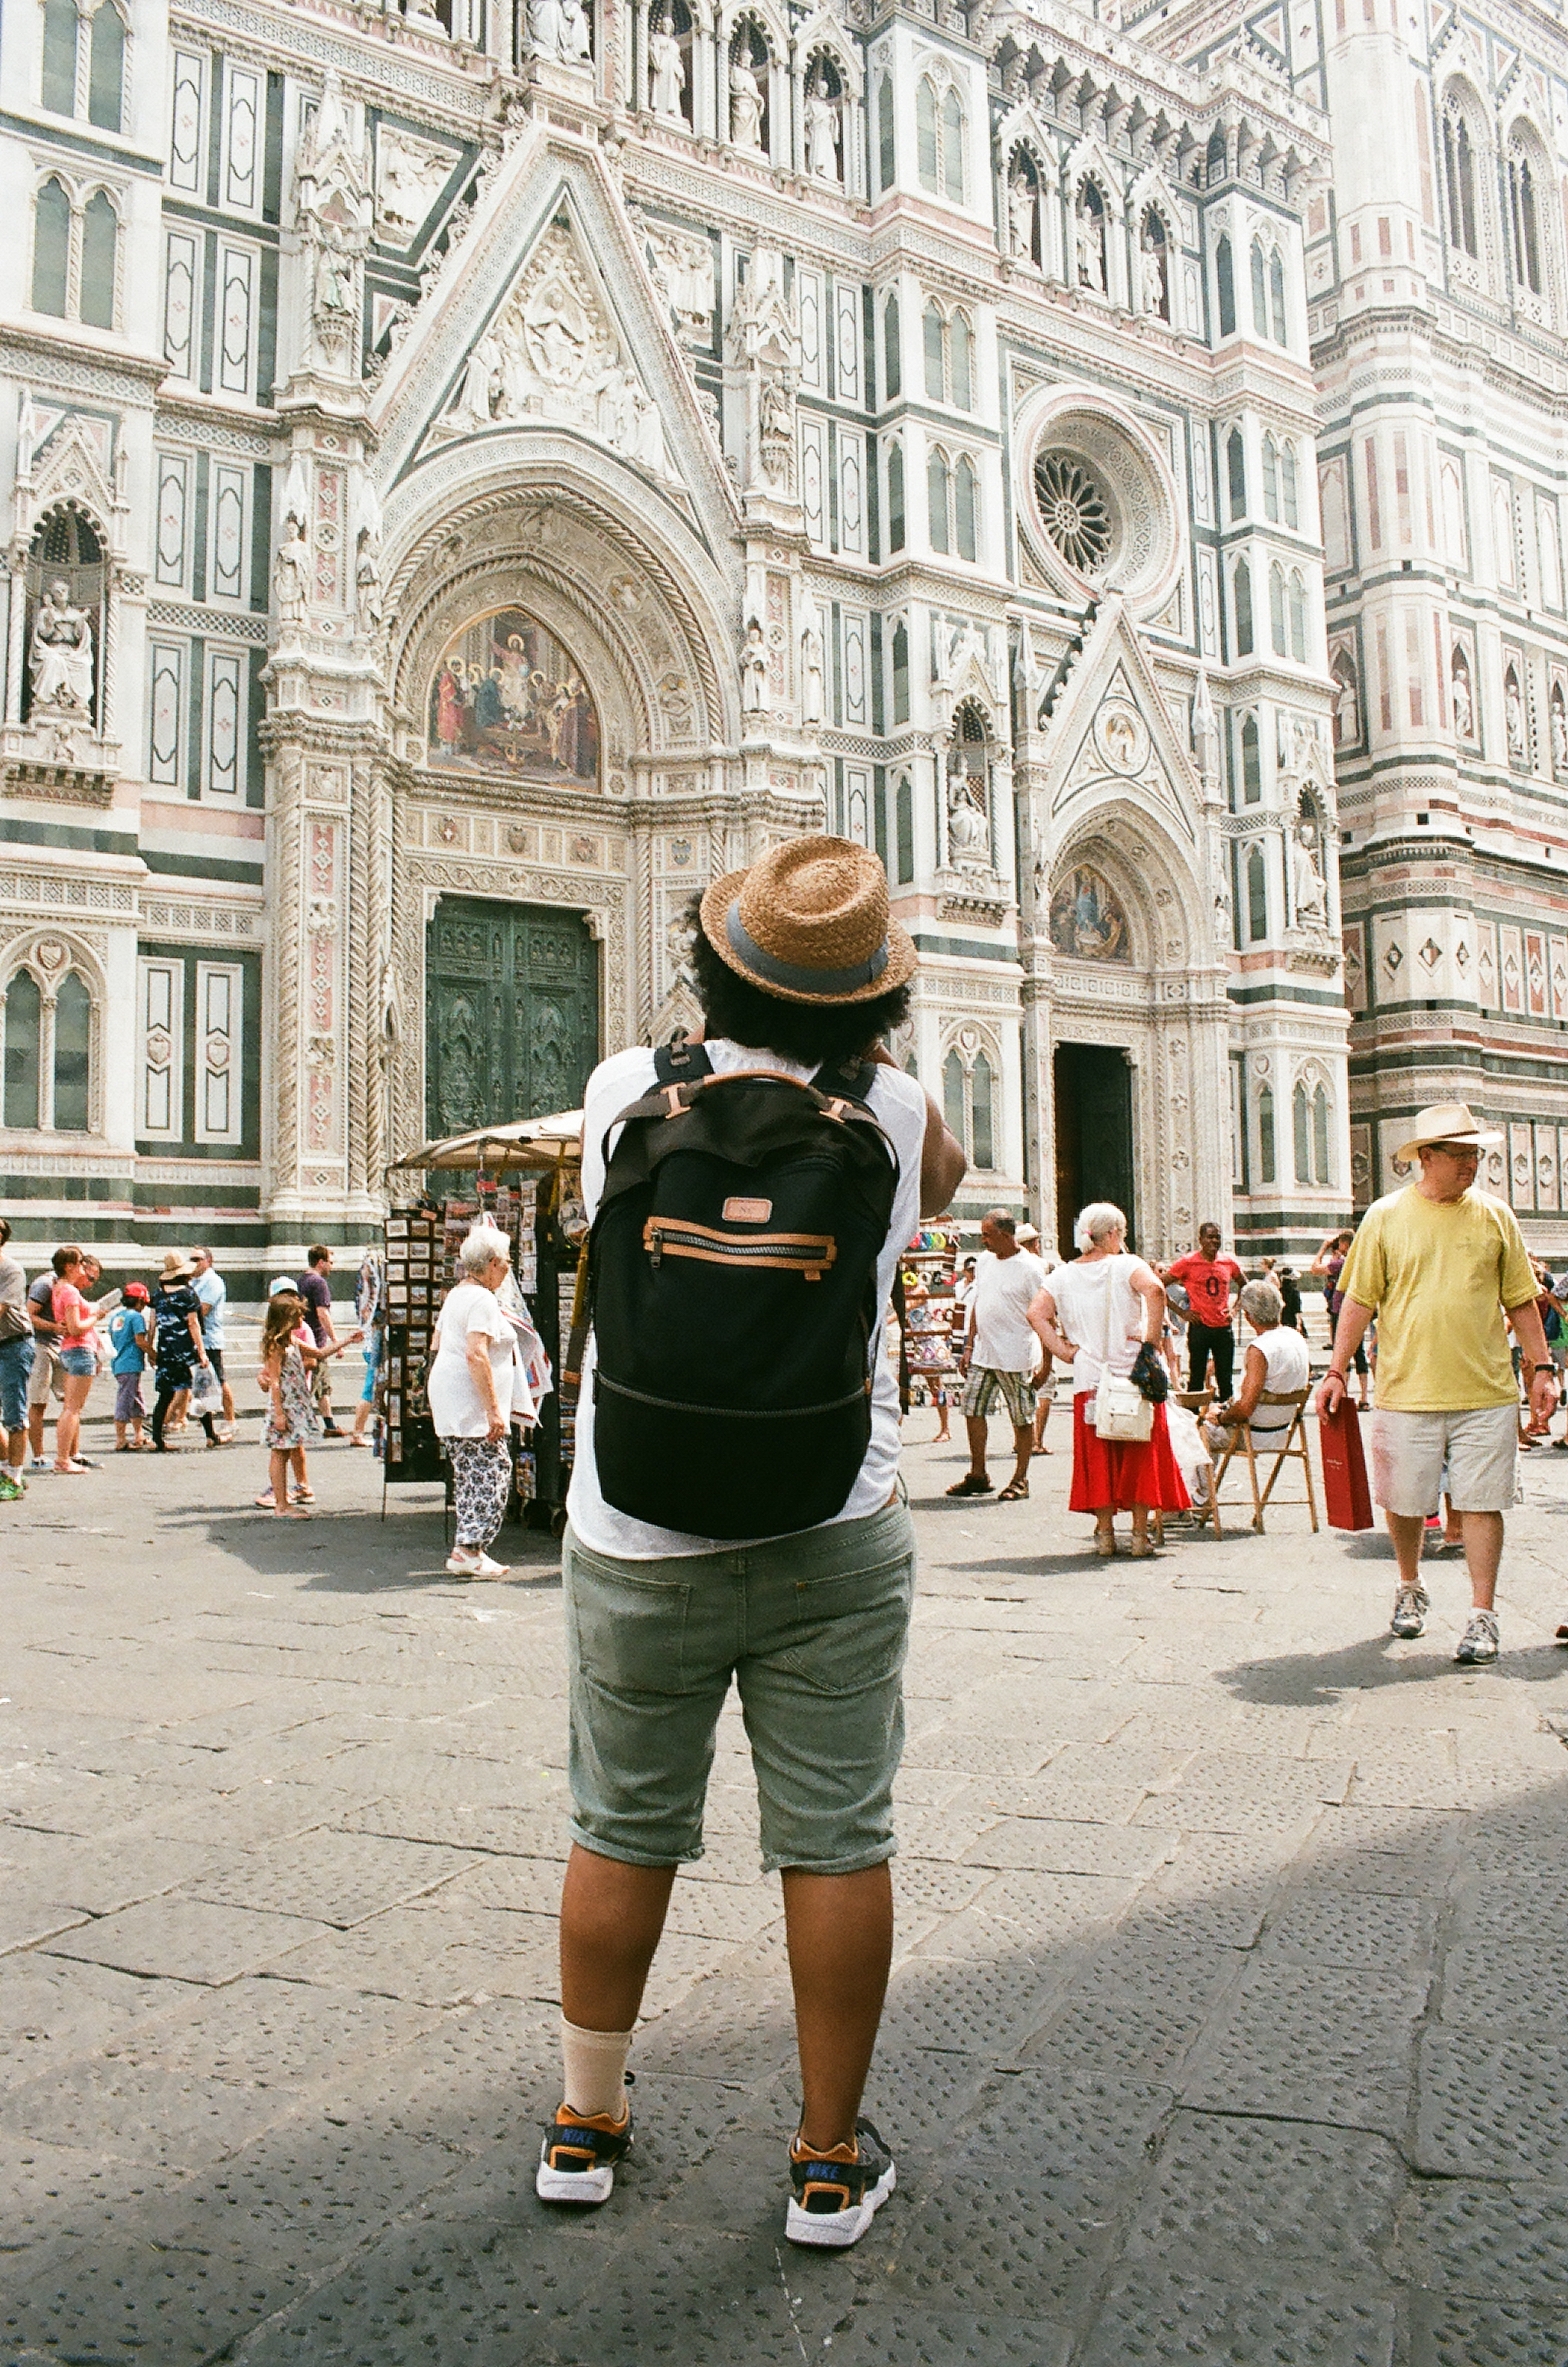 photograph by the earth warrior Il Duomo di Firenze Florence, Italy